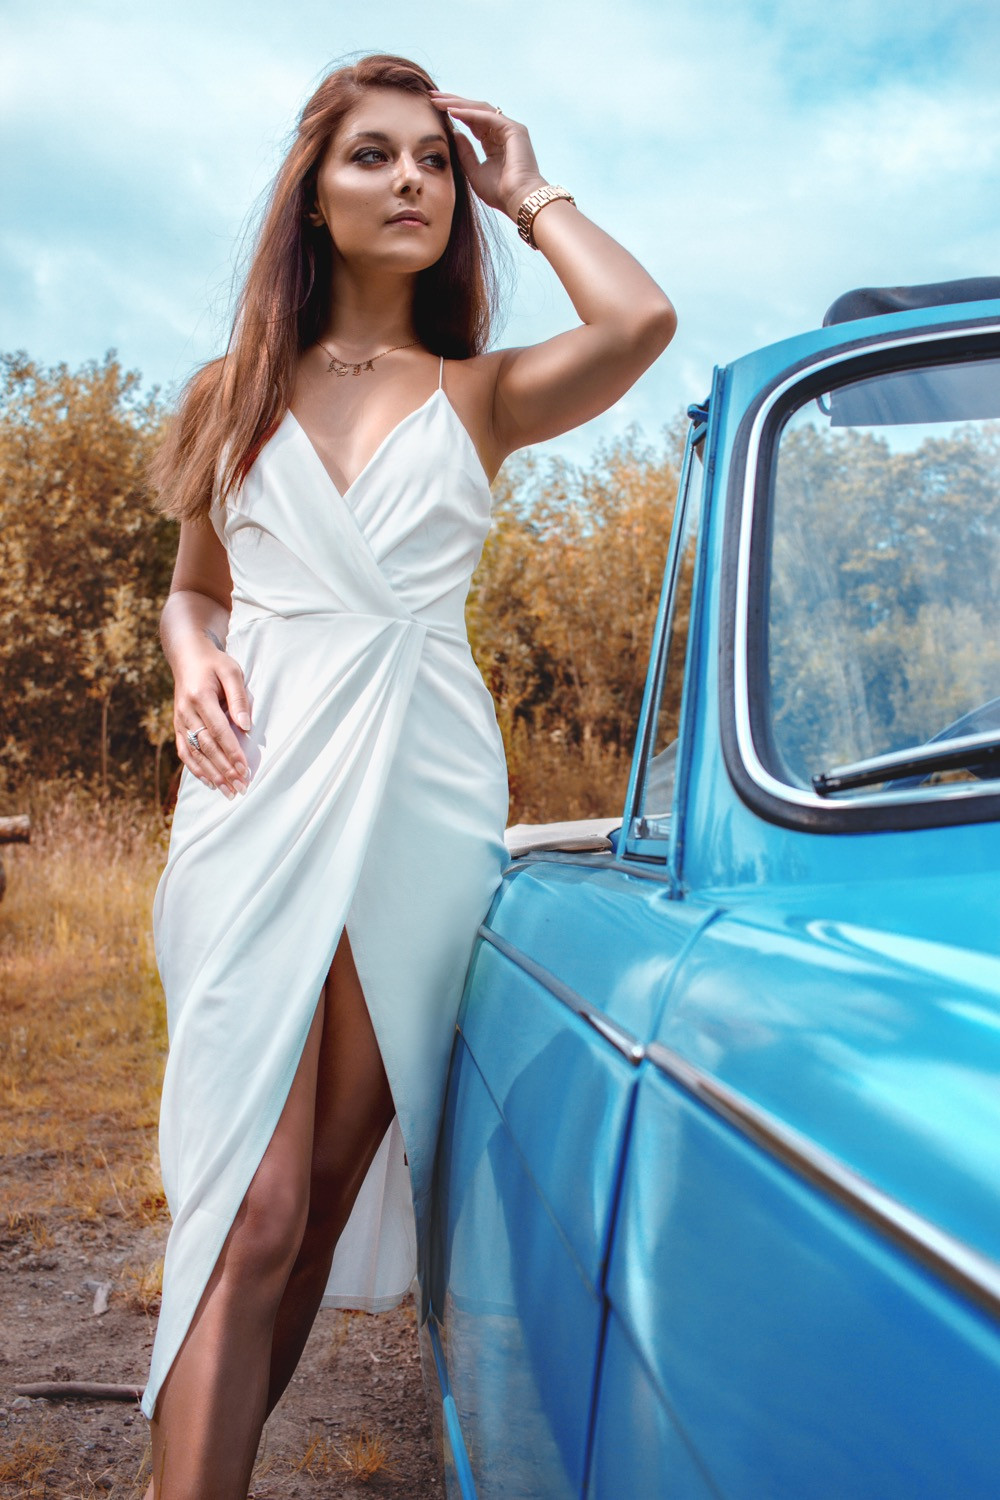 Photoshoot with Kippford Classic Car Hire and Makeup by Hania